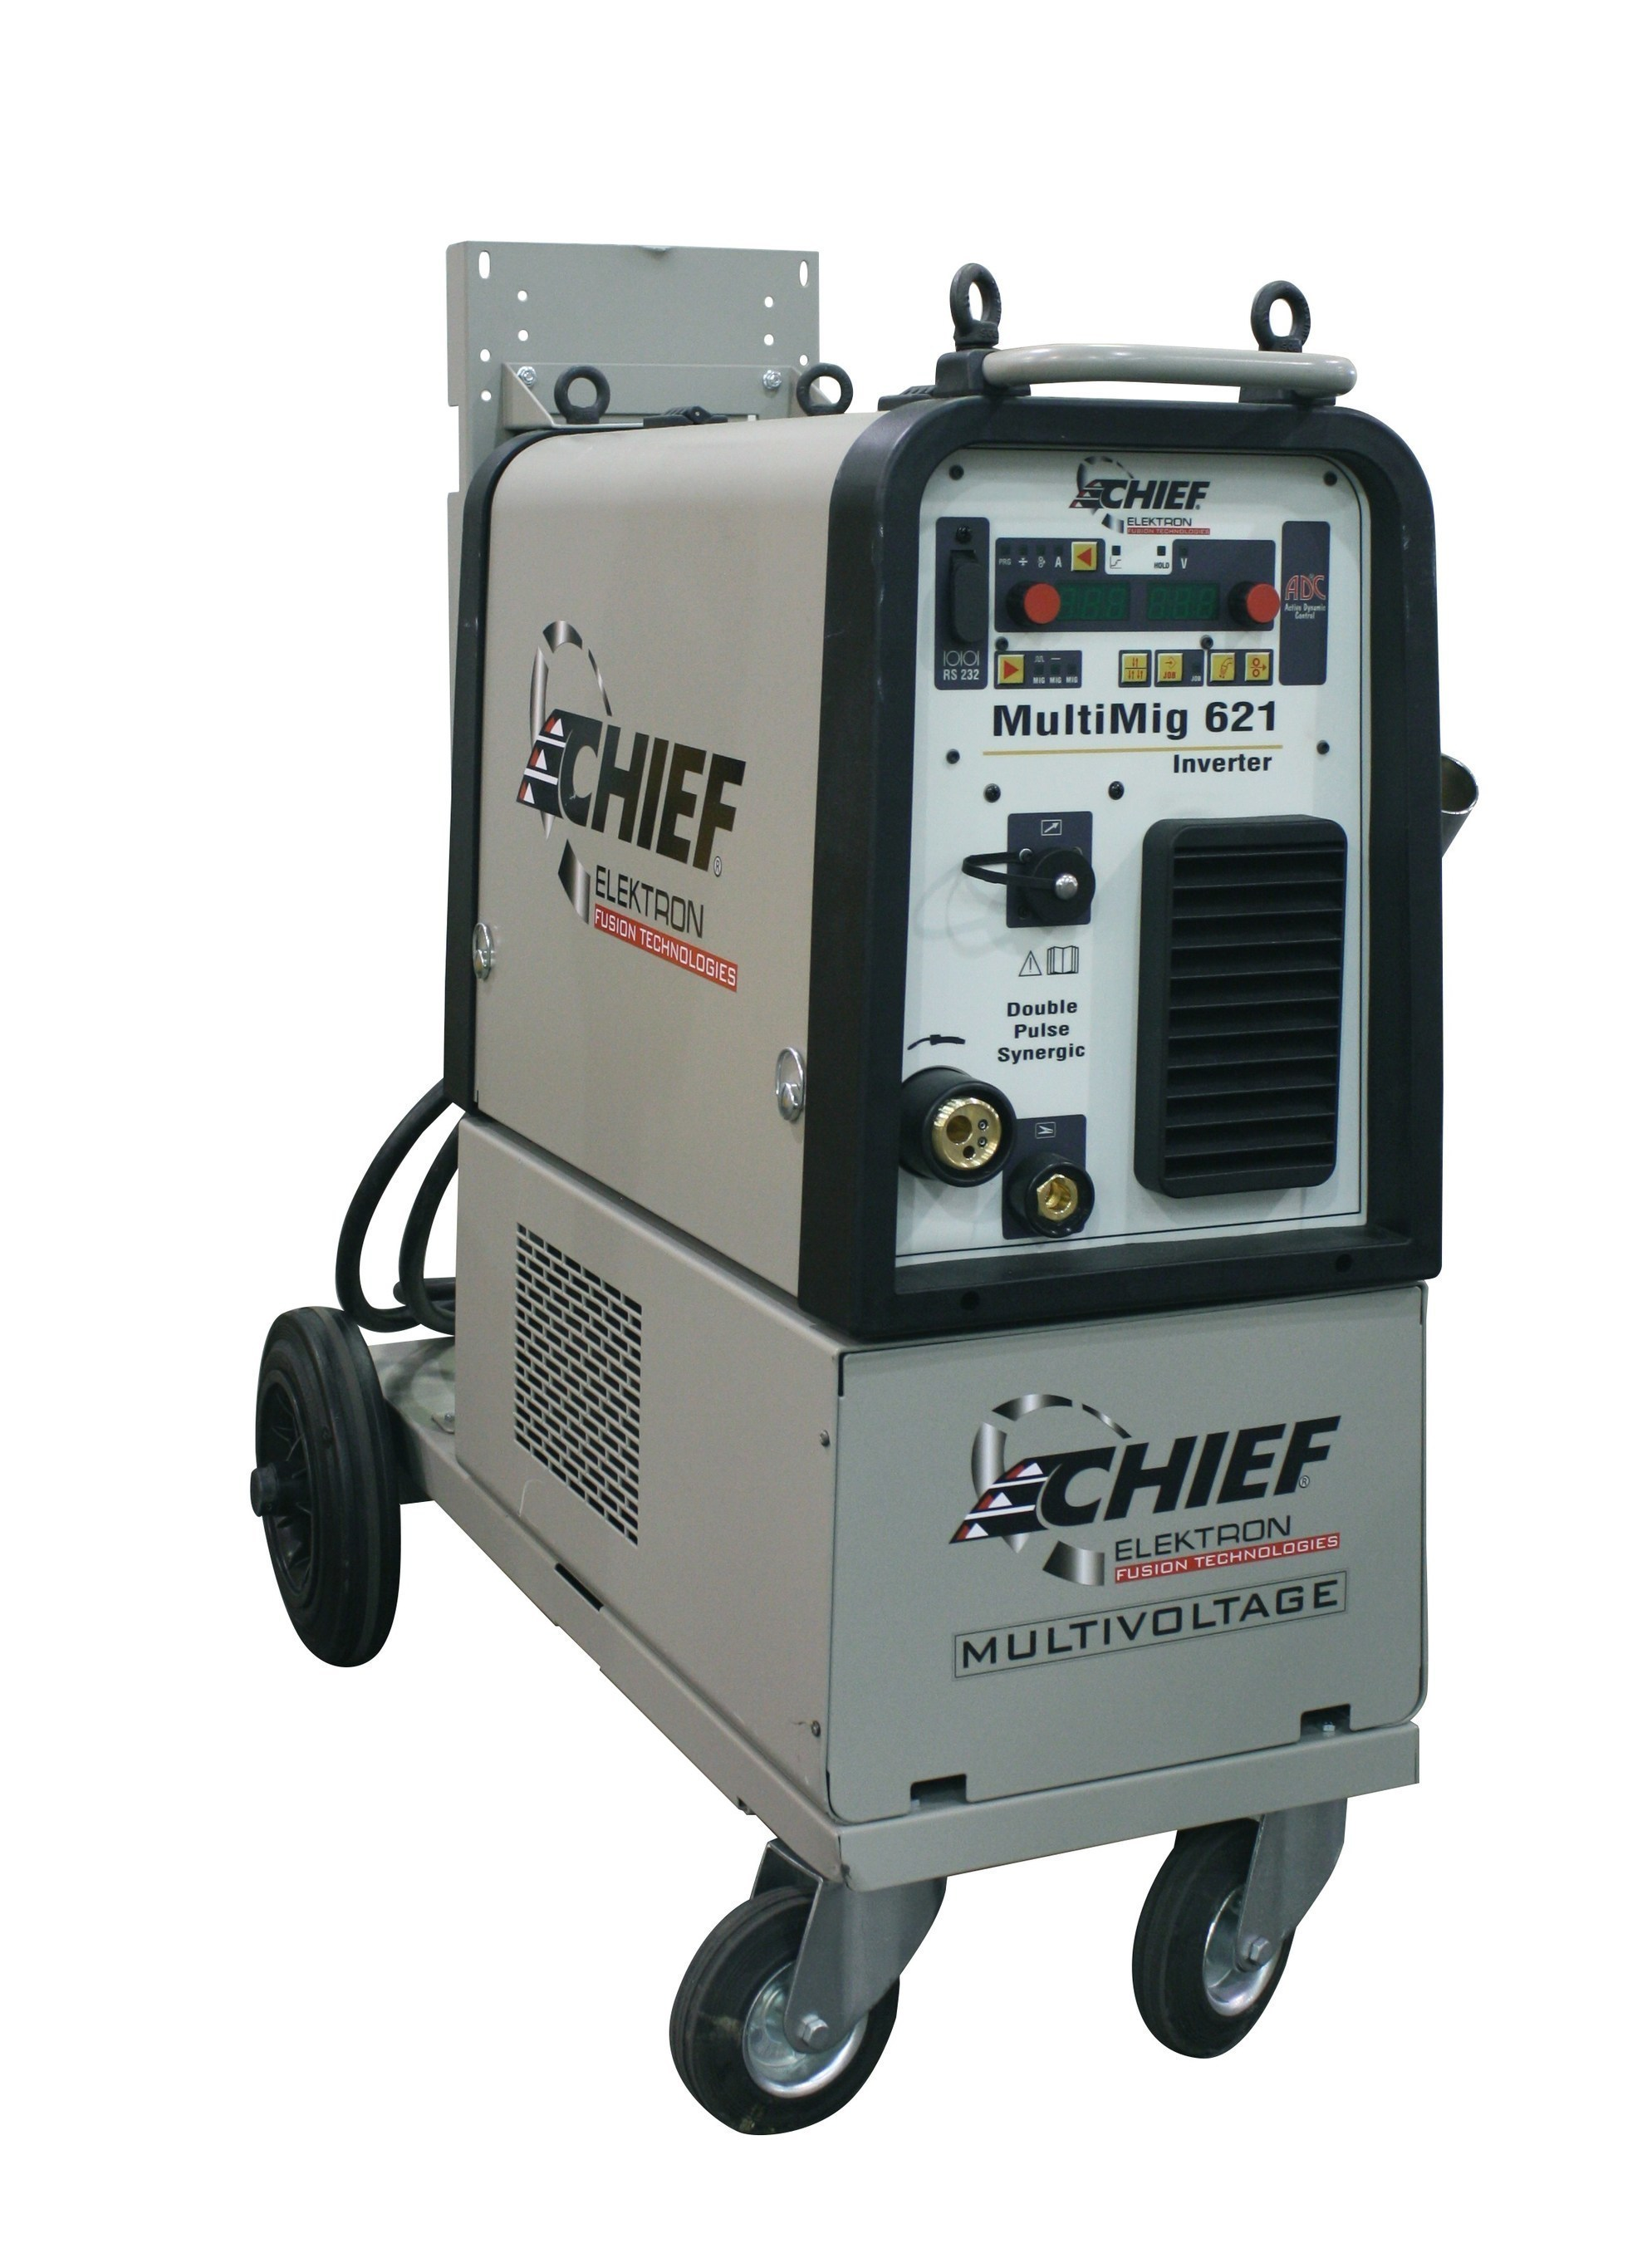 The new Chief MultiMig 621 inverter synergic pulse MIG/MAG welder is a three-phase, high-amperage model designed for welding and brazing aluminum, galvanized sheet metal, stainless steel and high-strength steel.